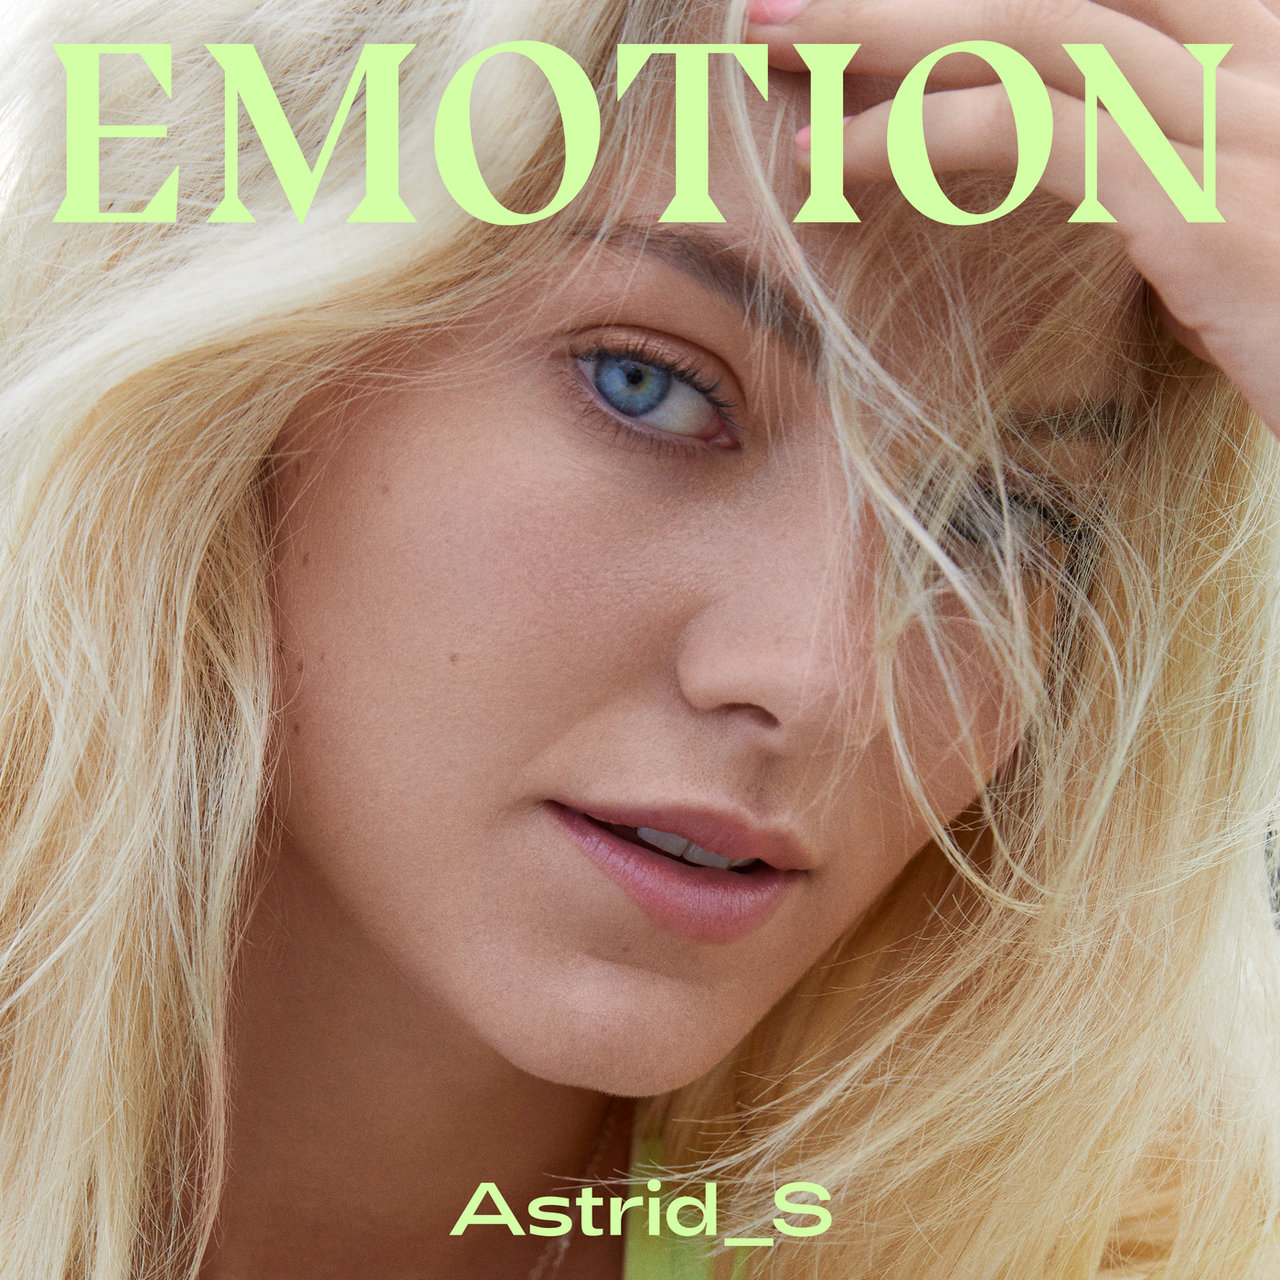 Emotion (Clean Version)